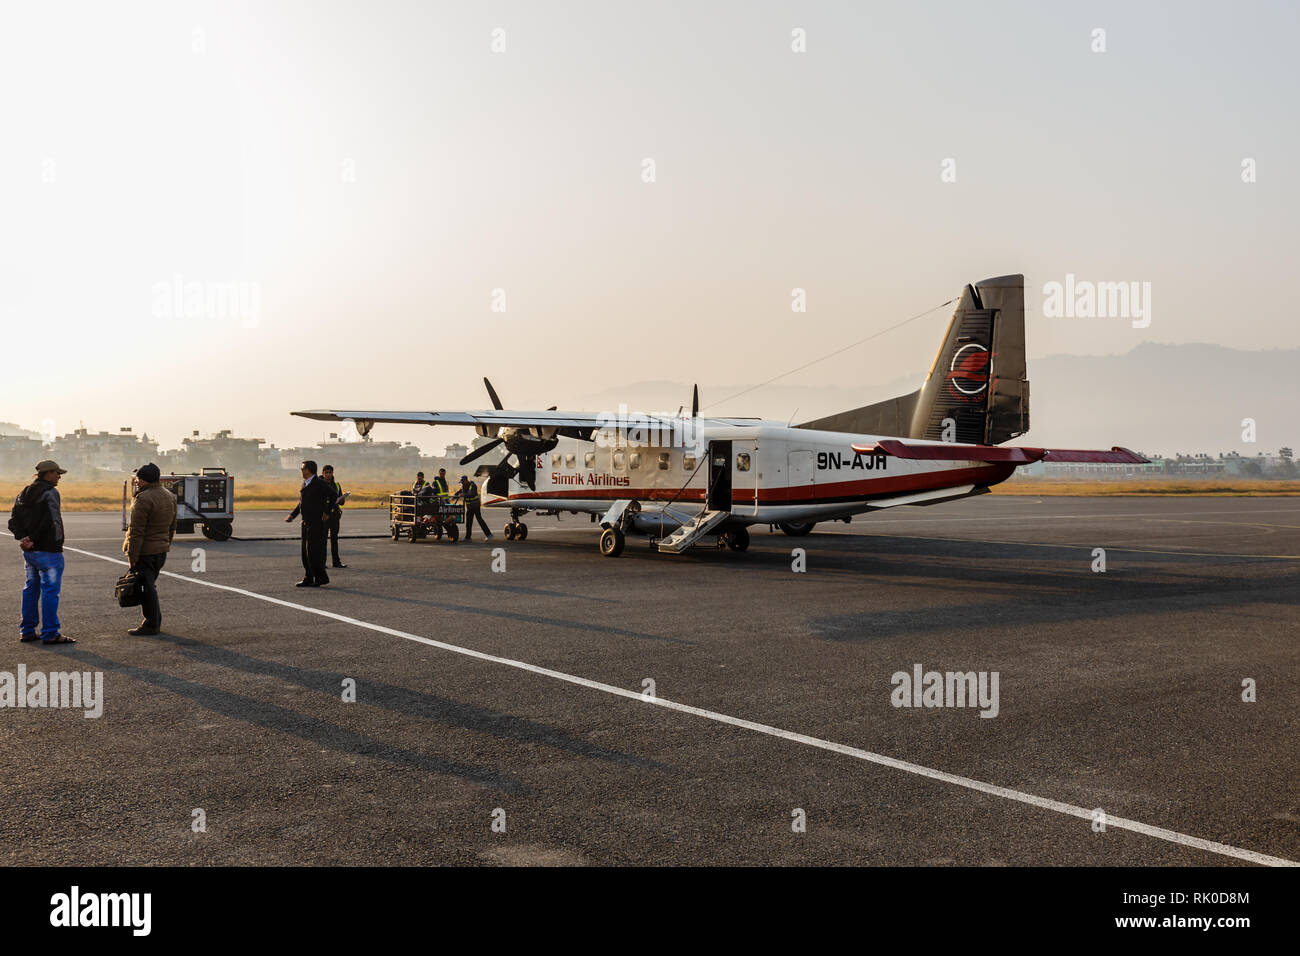 Pokhara, Nepal - November 24, 2016: Small passenger airplane at the Pokhara airport early in the morning preparing to fly. - Stock Image